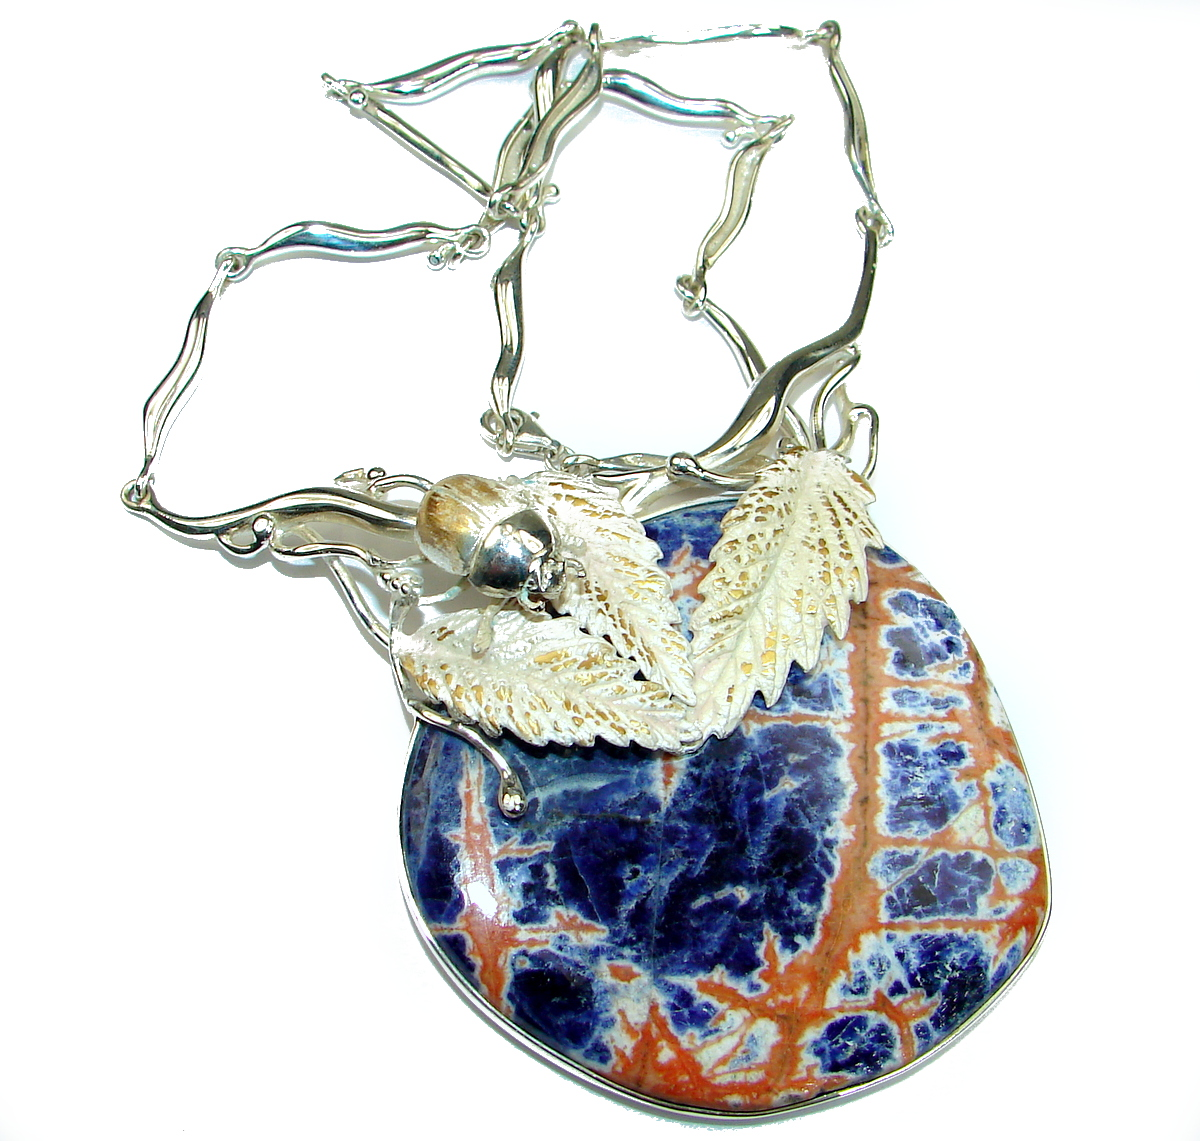 The Beetle Oversized genuine Sodalite .925 Sterling Silver handmade necklace